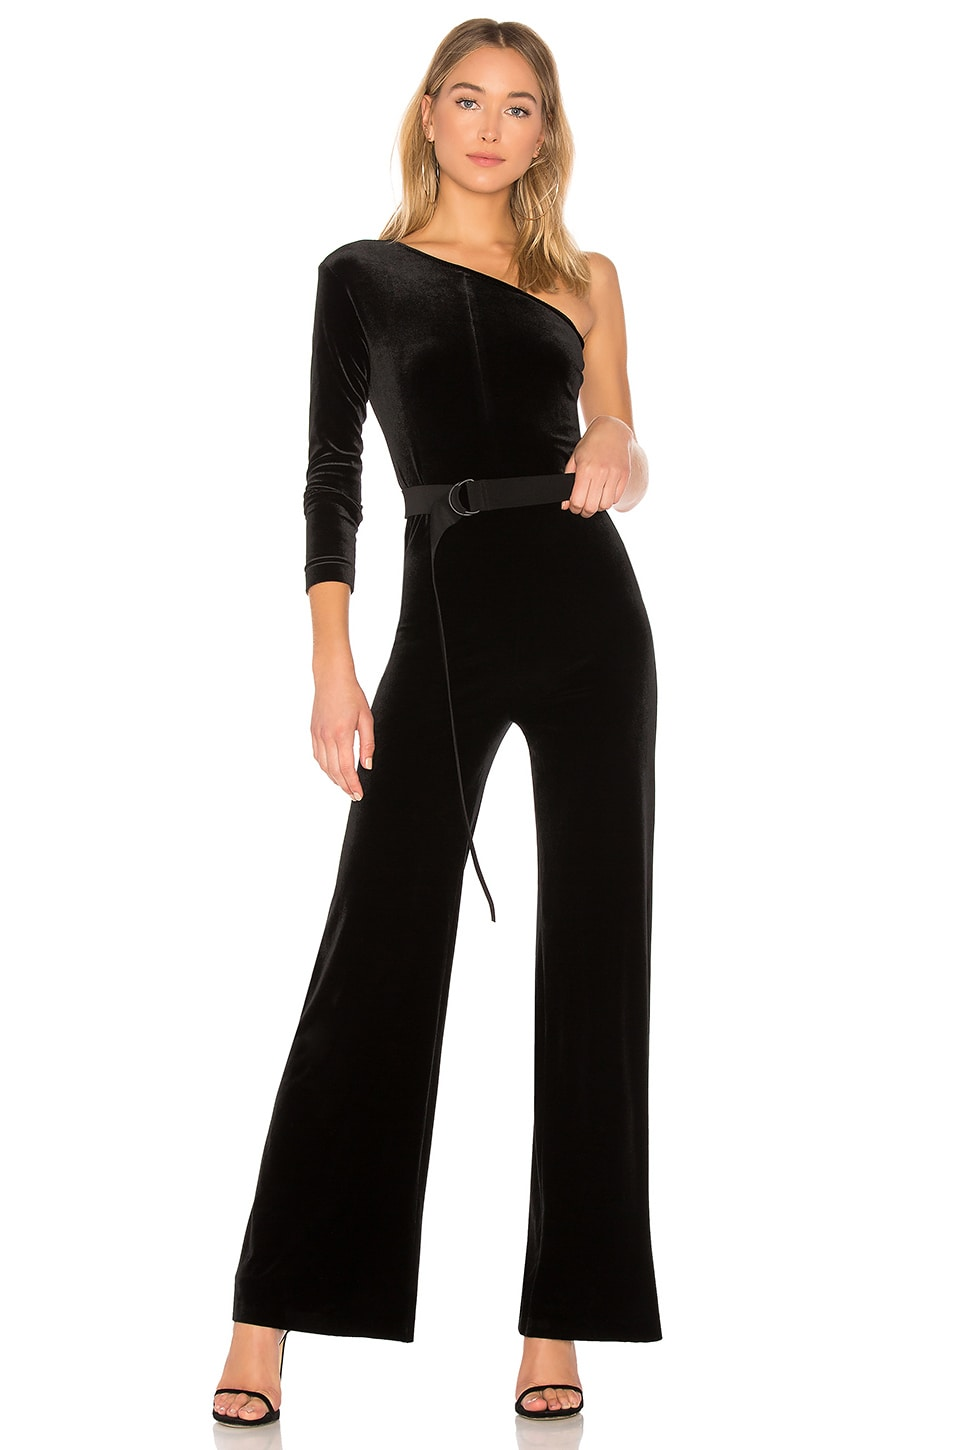 Norma Kamali One Shoulder Jumpsuit in Black